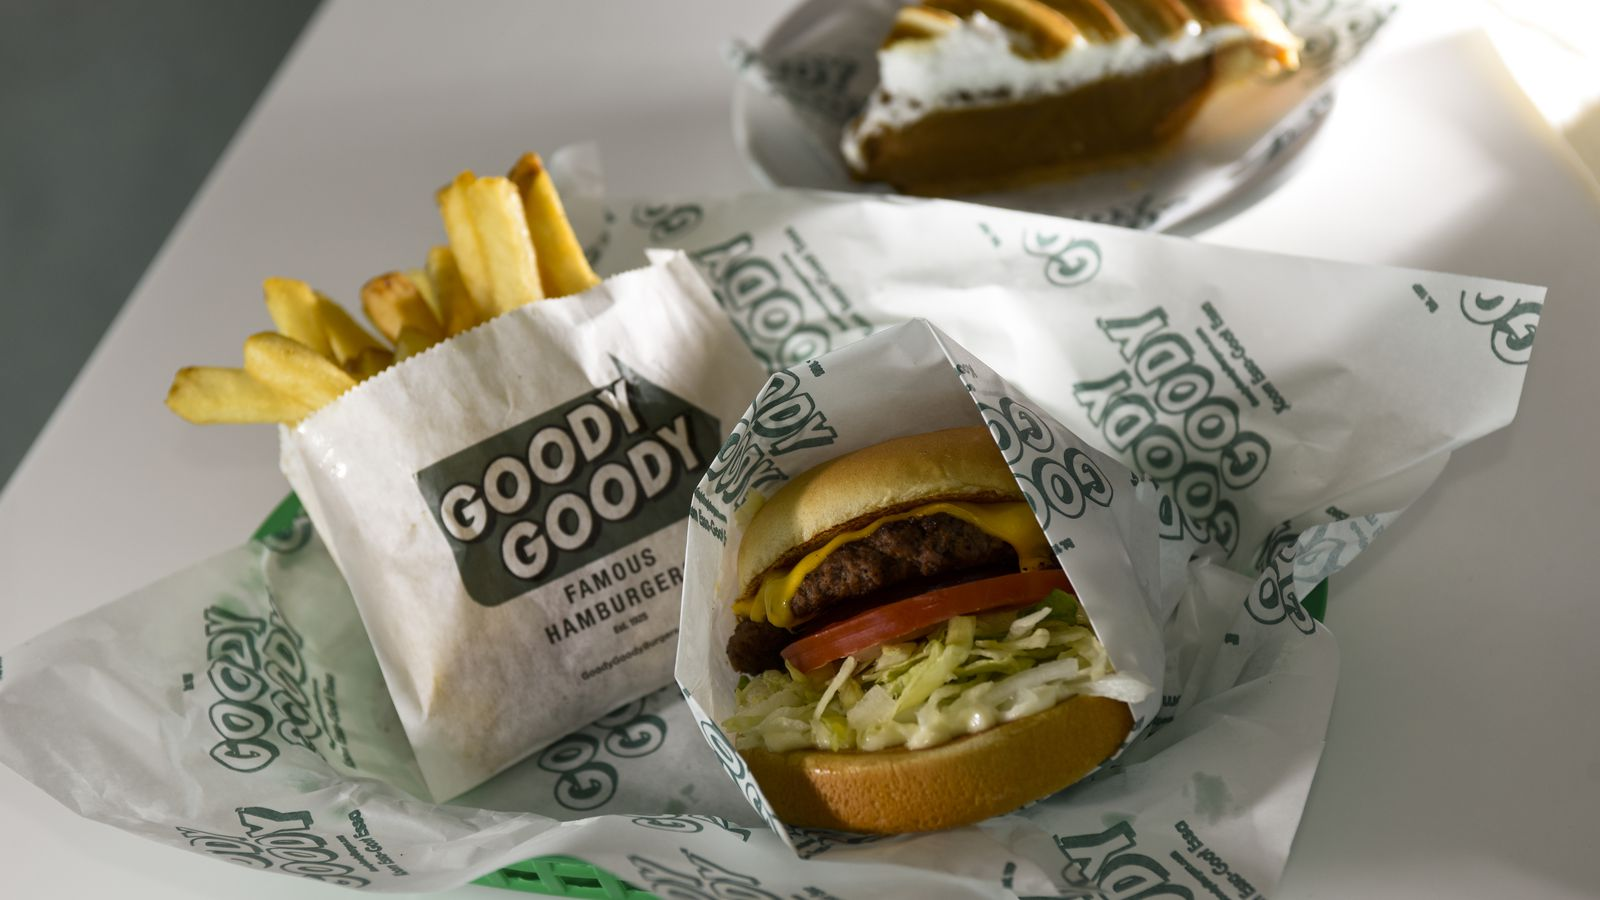 Goody Goody is among the Tampa International Airport restaurants offering touchless airside delivery through the airport's new TPA to Go program. Shown here are Goody Goody's Hyde Park burger, french fries and butterscotch pie, photographed at the airport in 2018.